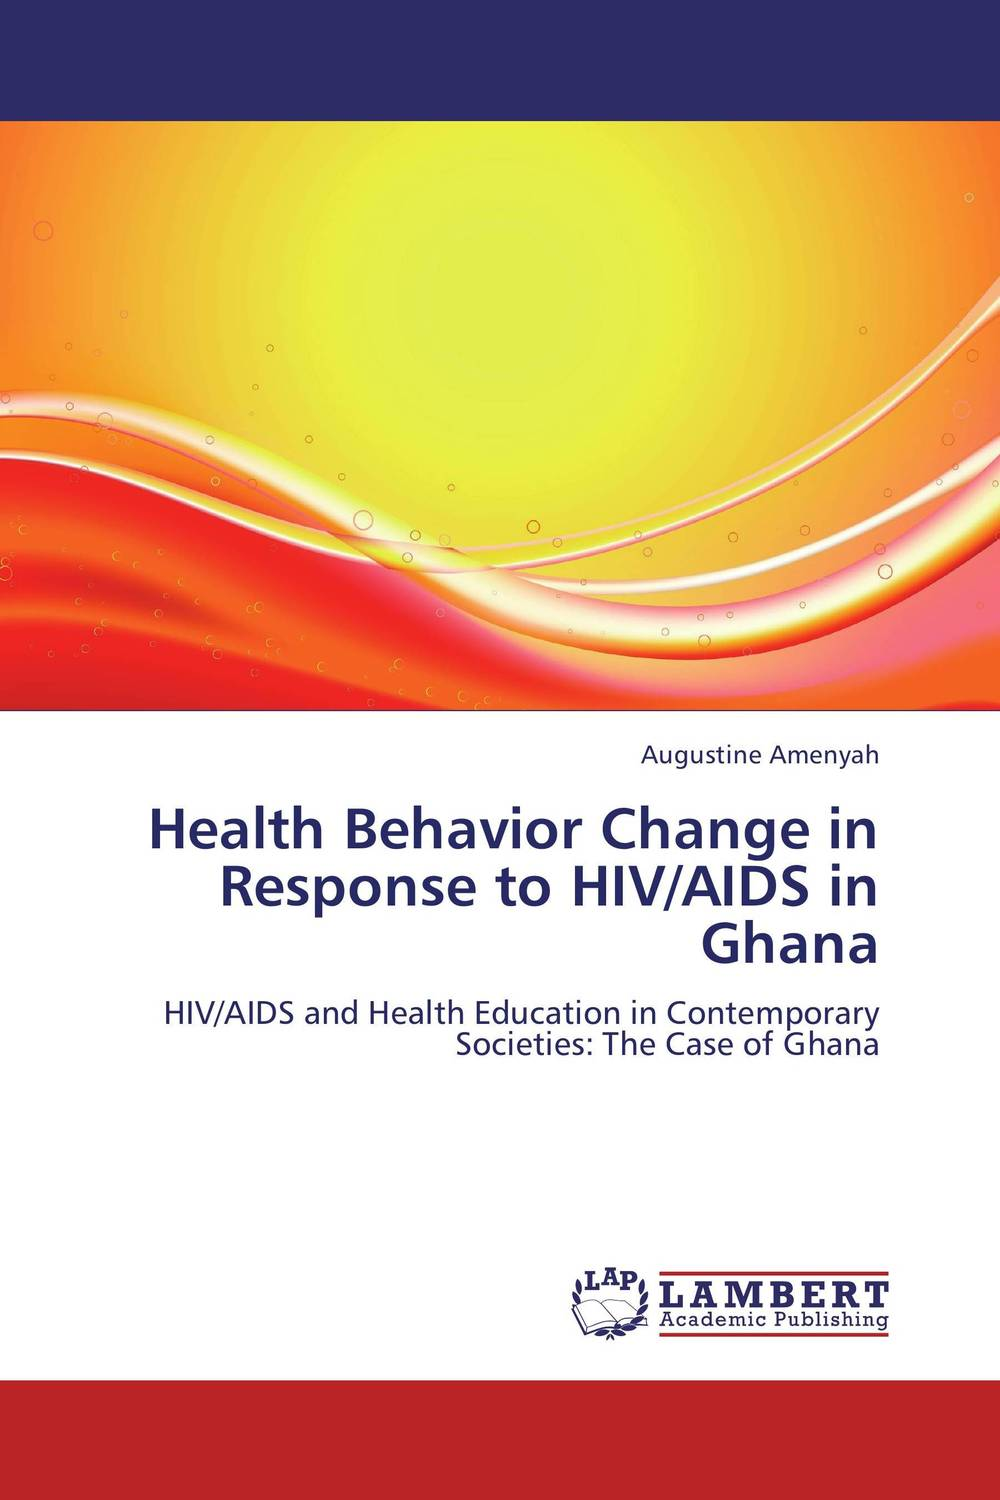 Health Behavior Change in Response to HIV/AIDS in Ghana public parks – the key to livable communities